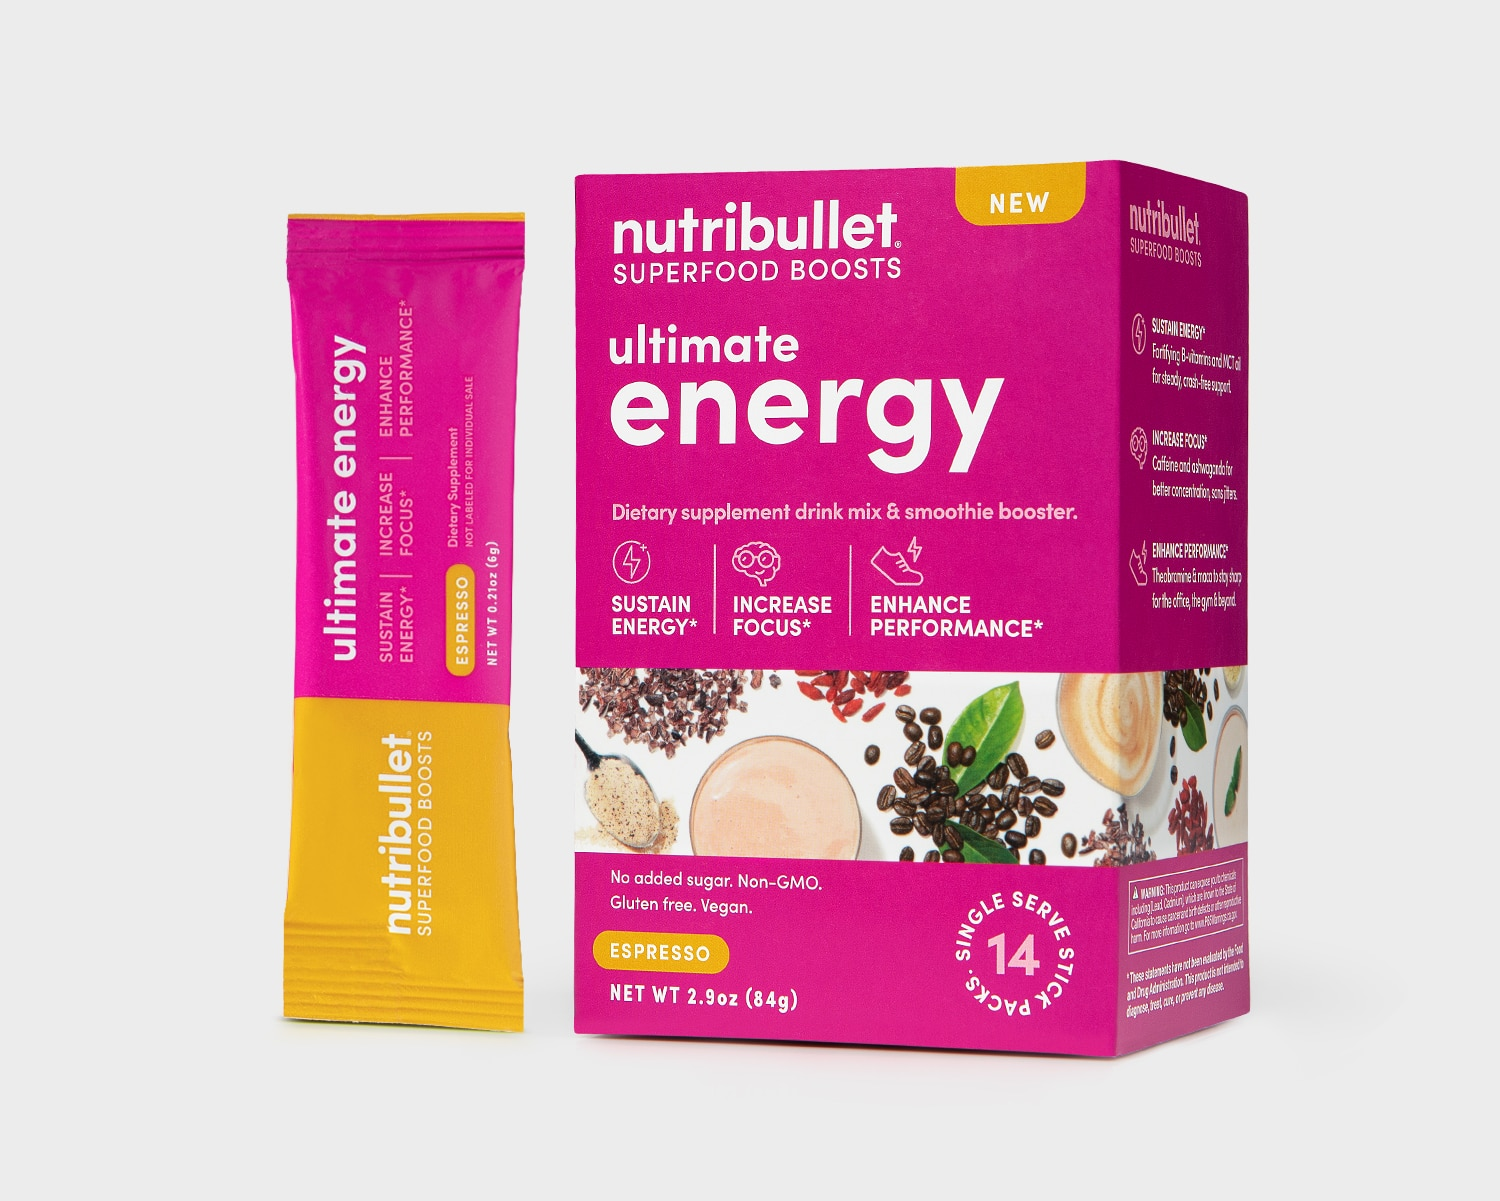 Product preview 1 of 3. Thumbnail NutriBullet Ultimate Energy pink box and packet of 14 stick packs espresso with beans, veggies and powder shown